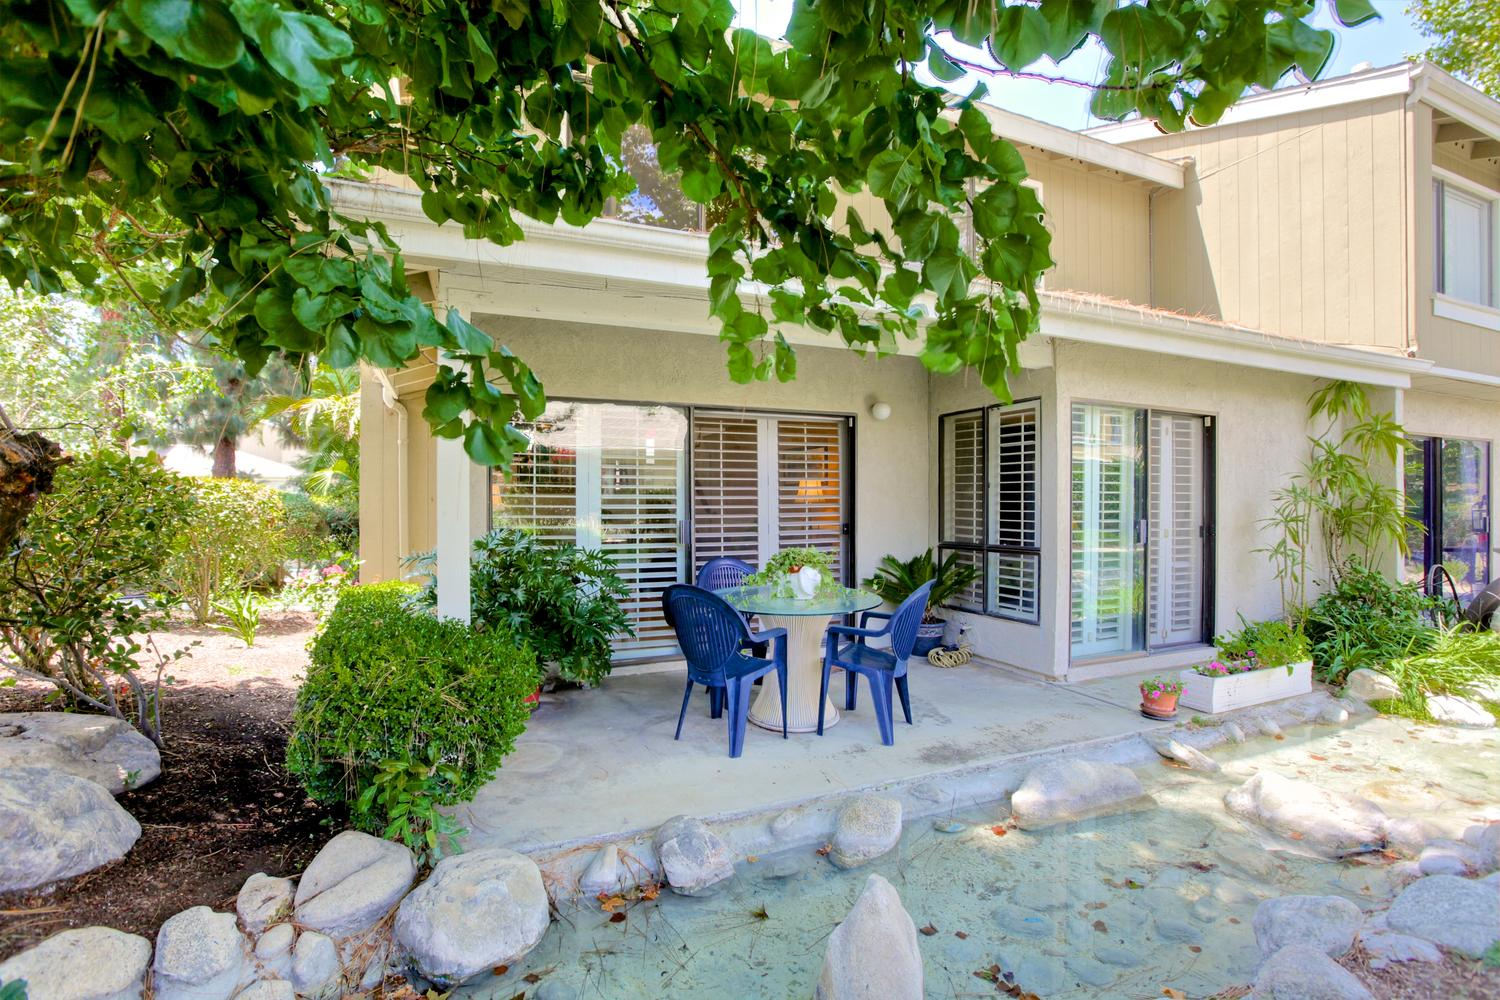 Costa Mesa Townhome sold by Jackie Gibbins Success Story